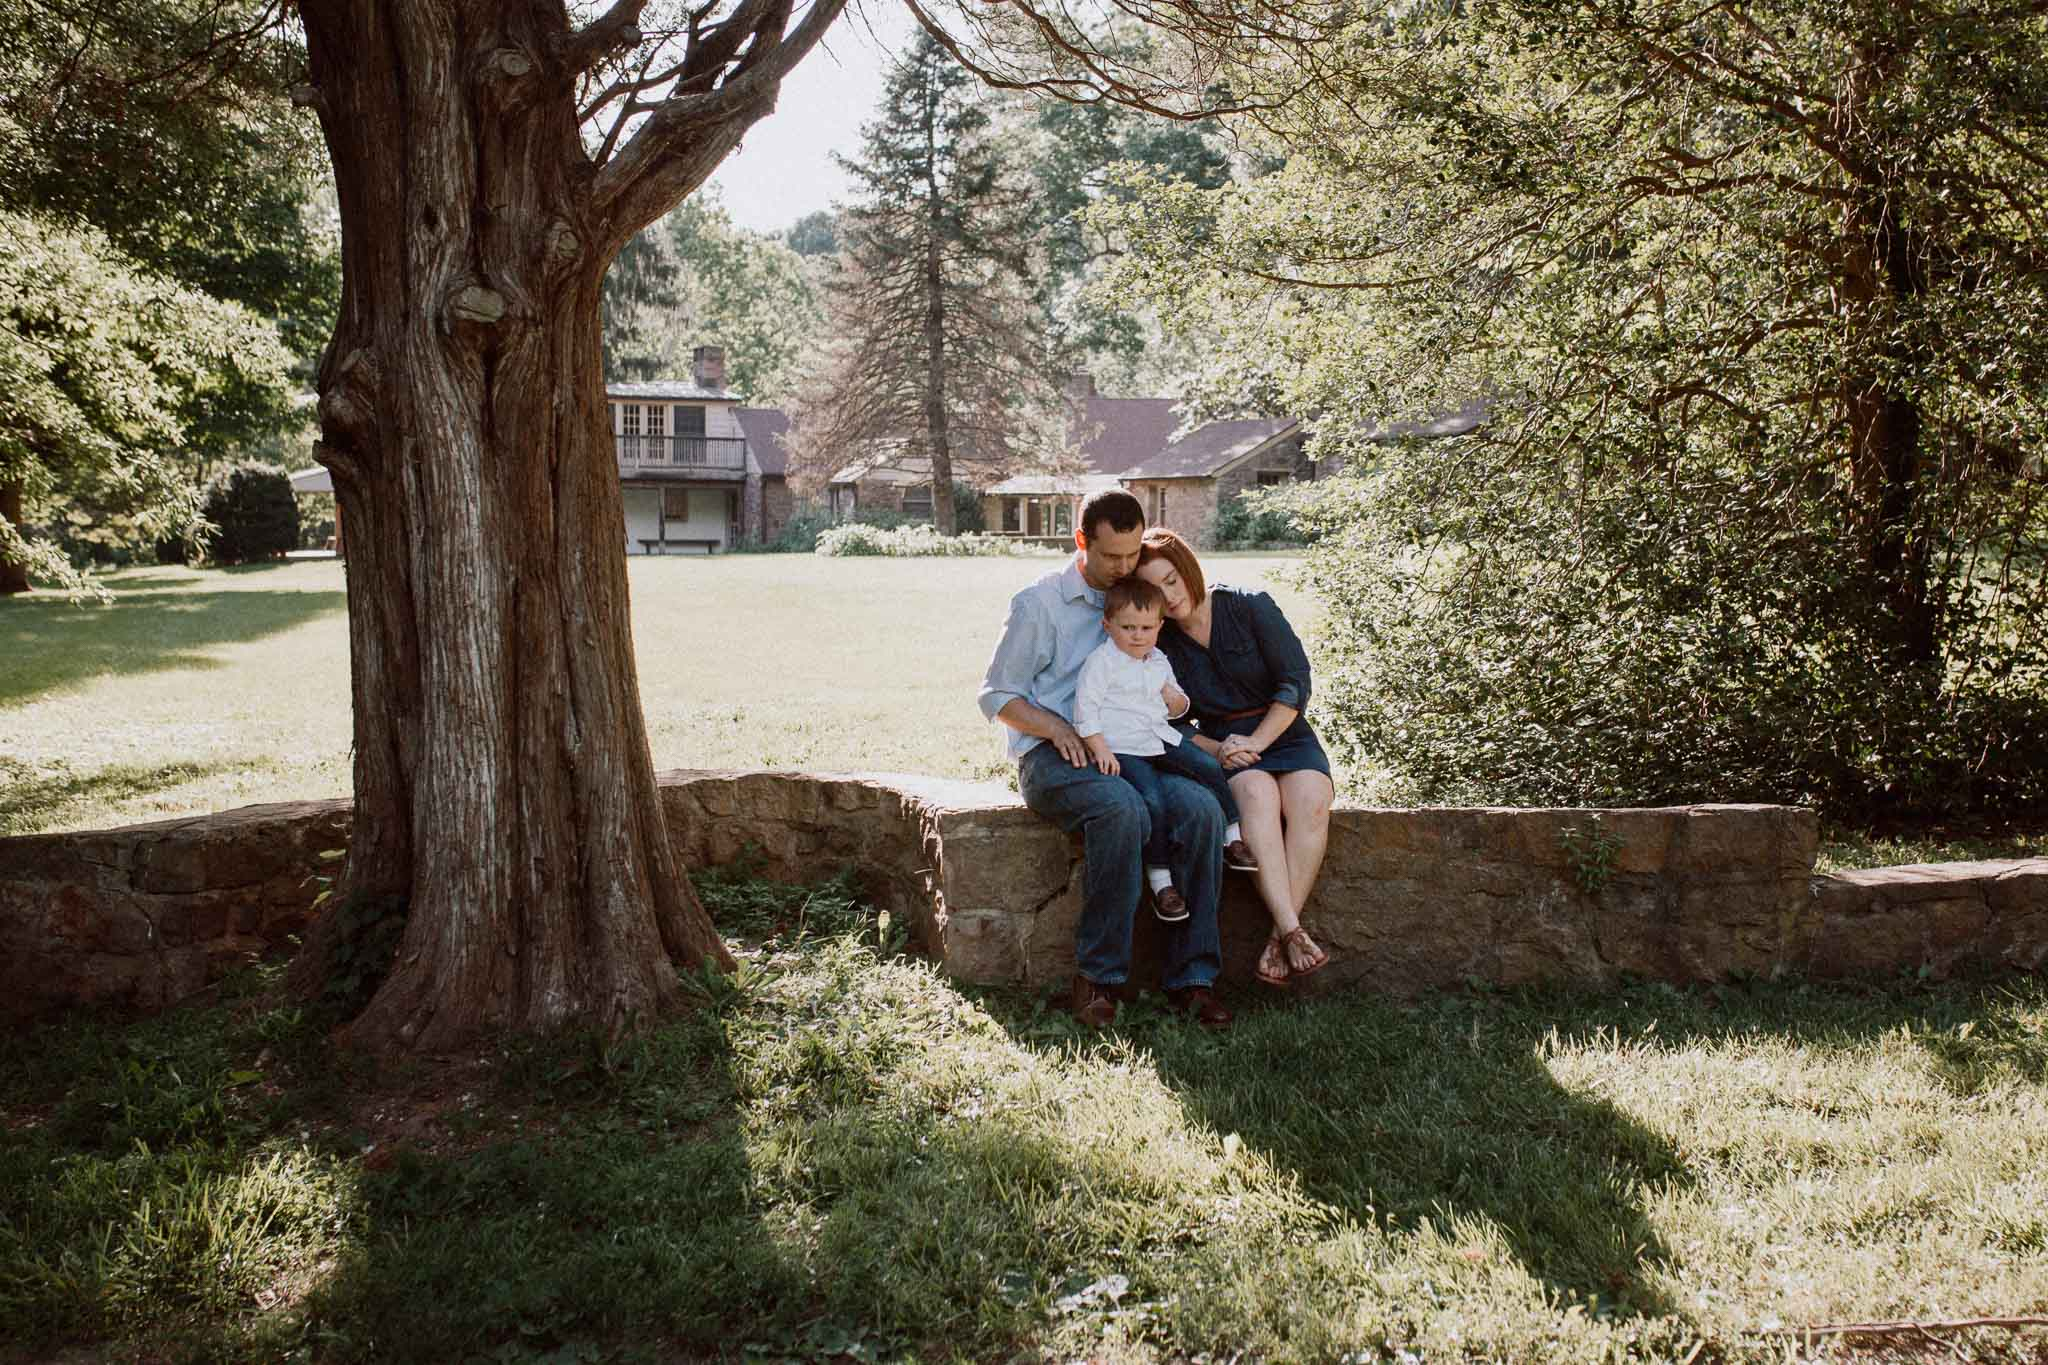 Family of three sit together at Cabell's Mill in Chantilly, Virginia